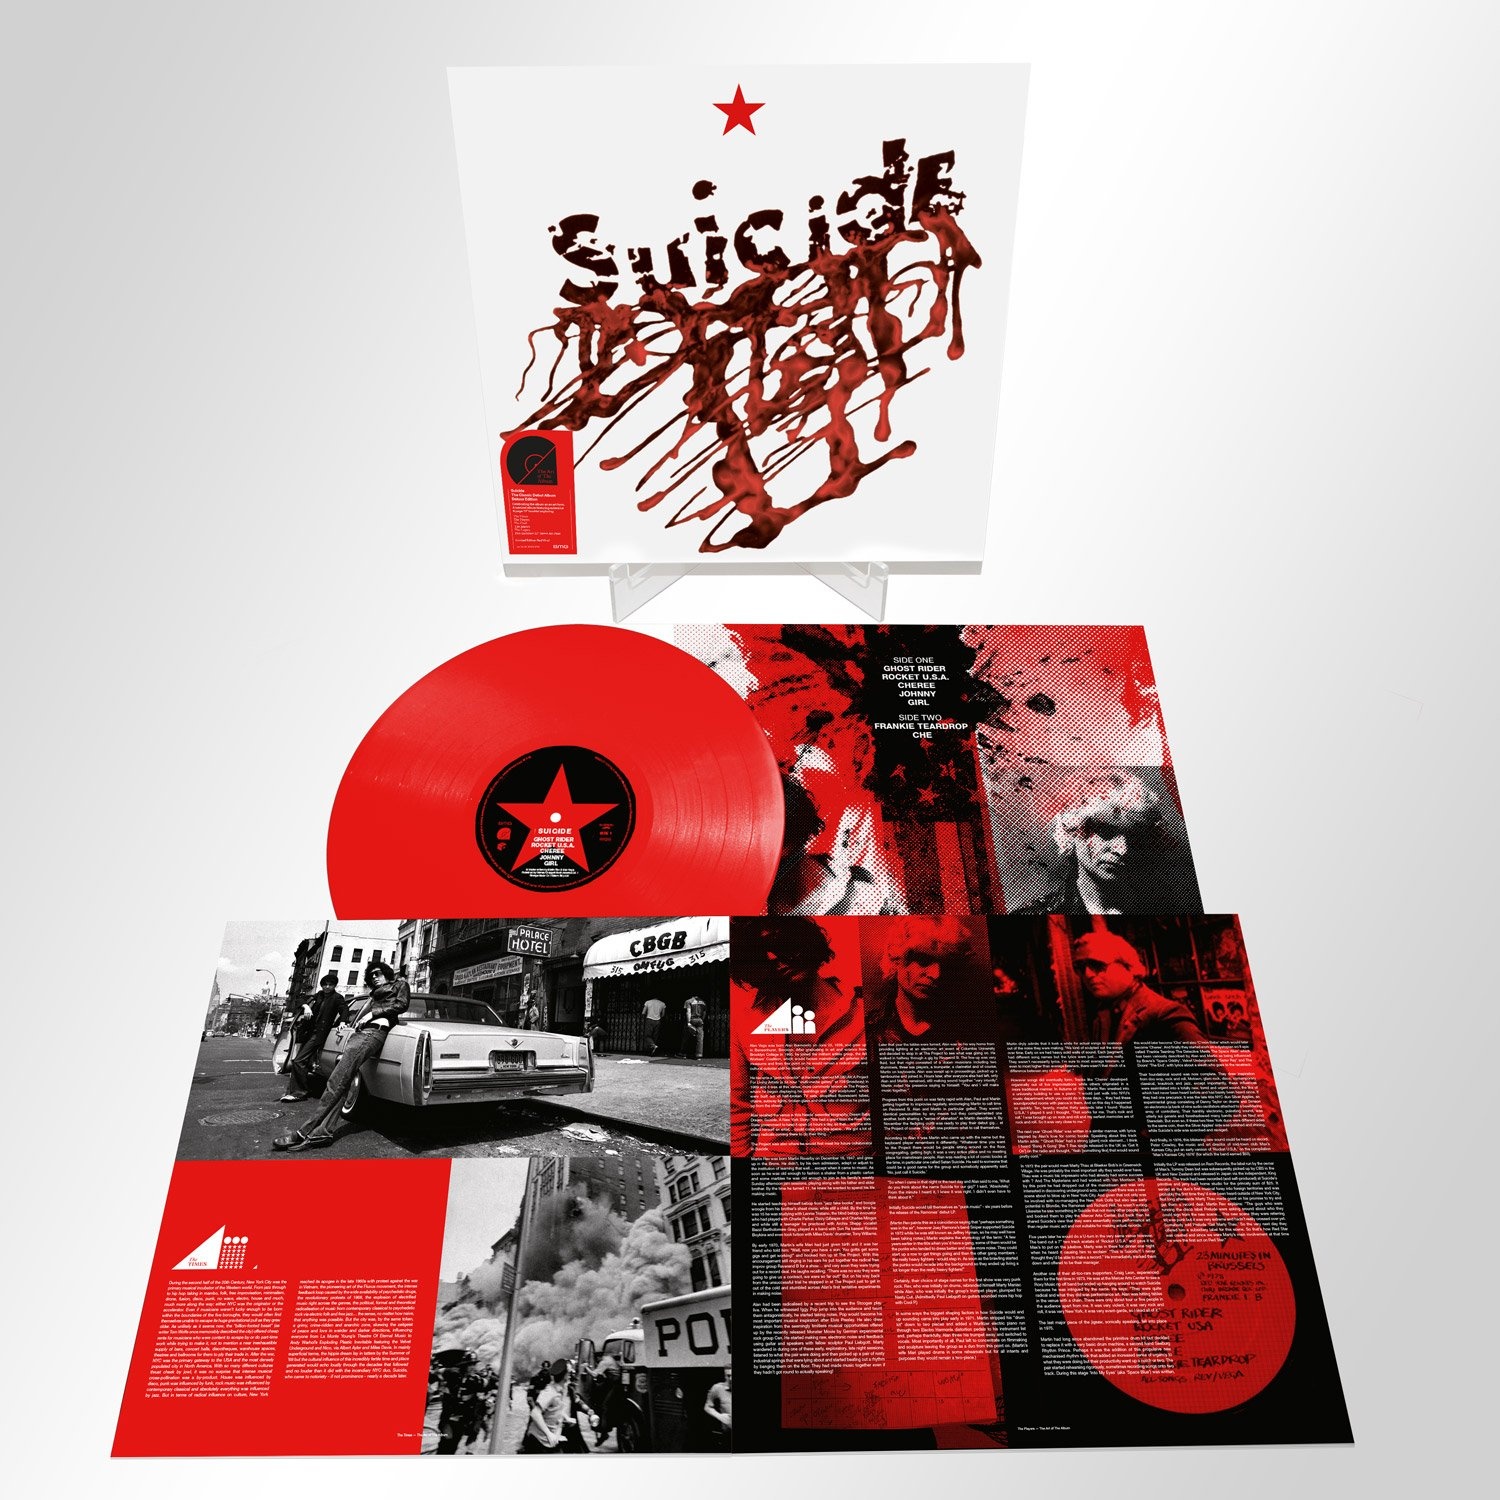 Suicide's debut album will be given the Art of the Album treatment and reissued on red vinyl, CD and digitally on July 26, 2019 via Mute/BMG